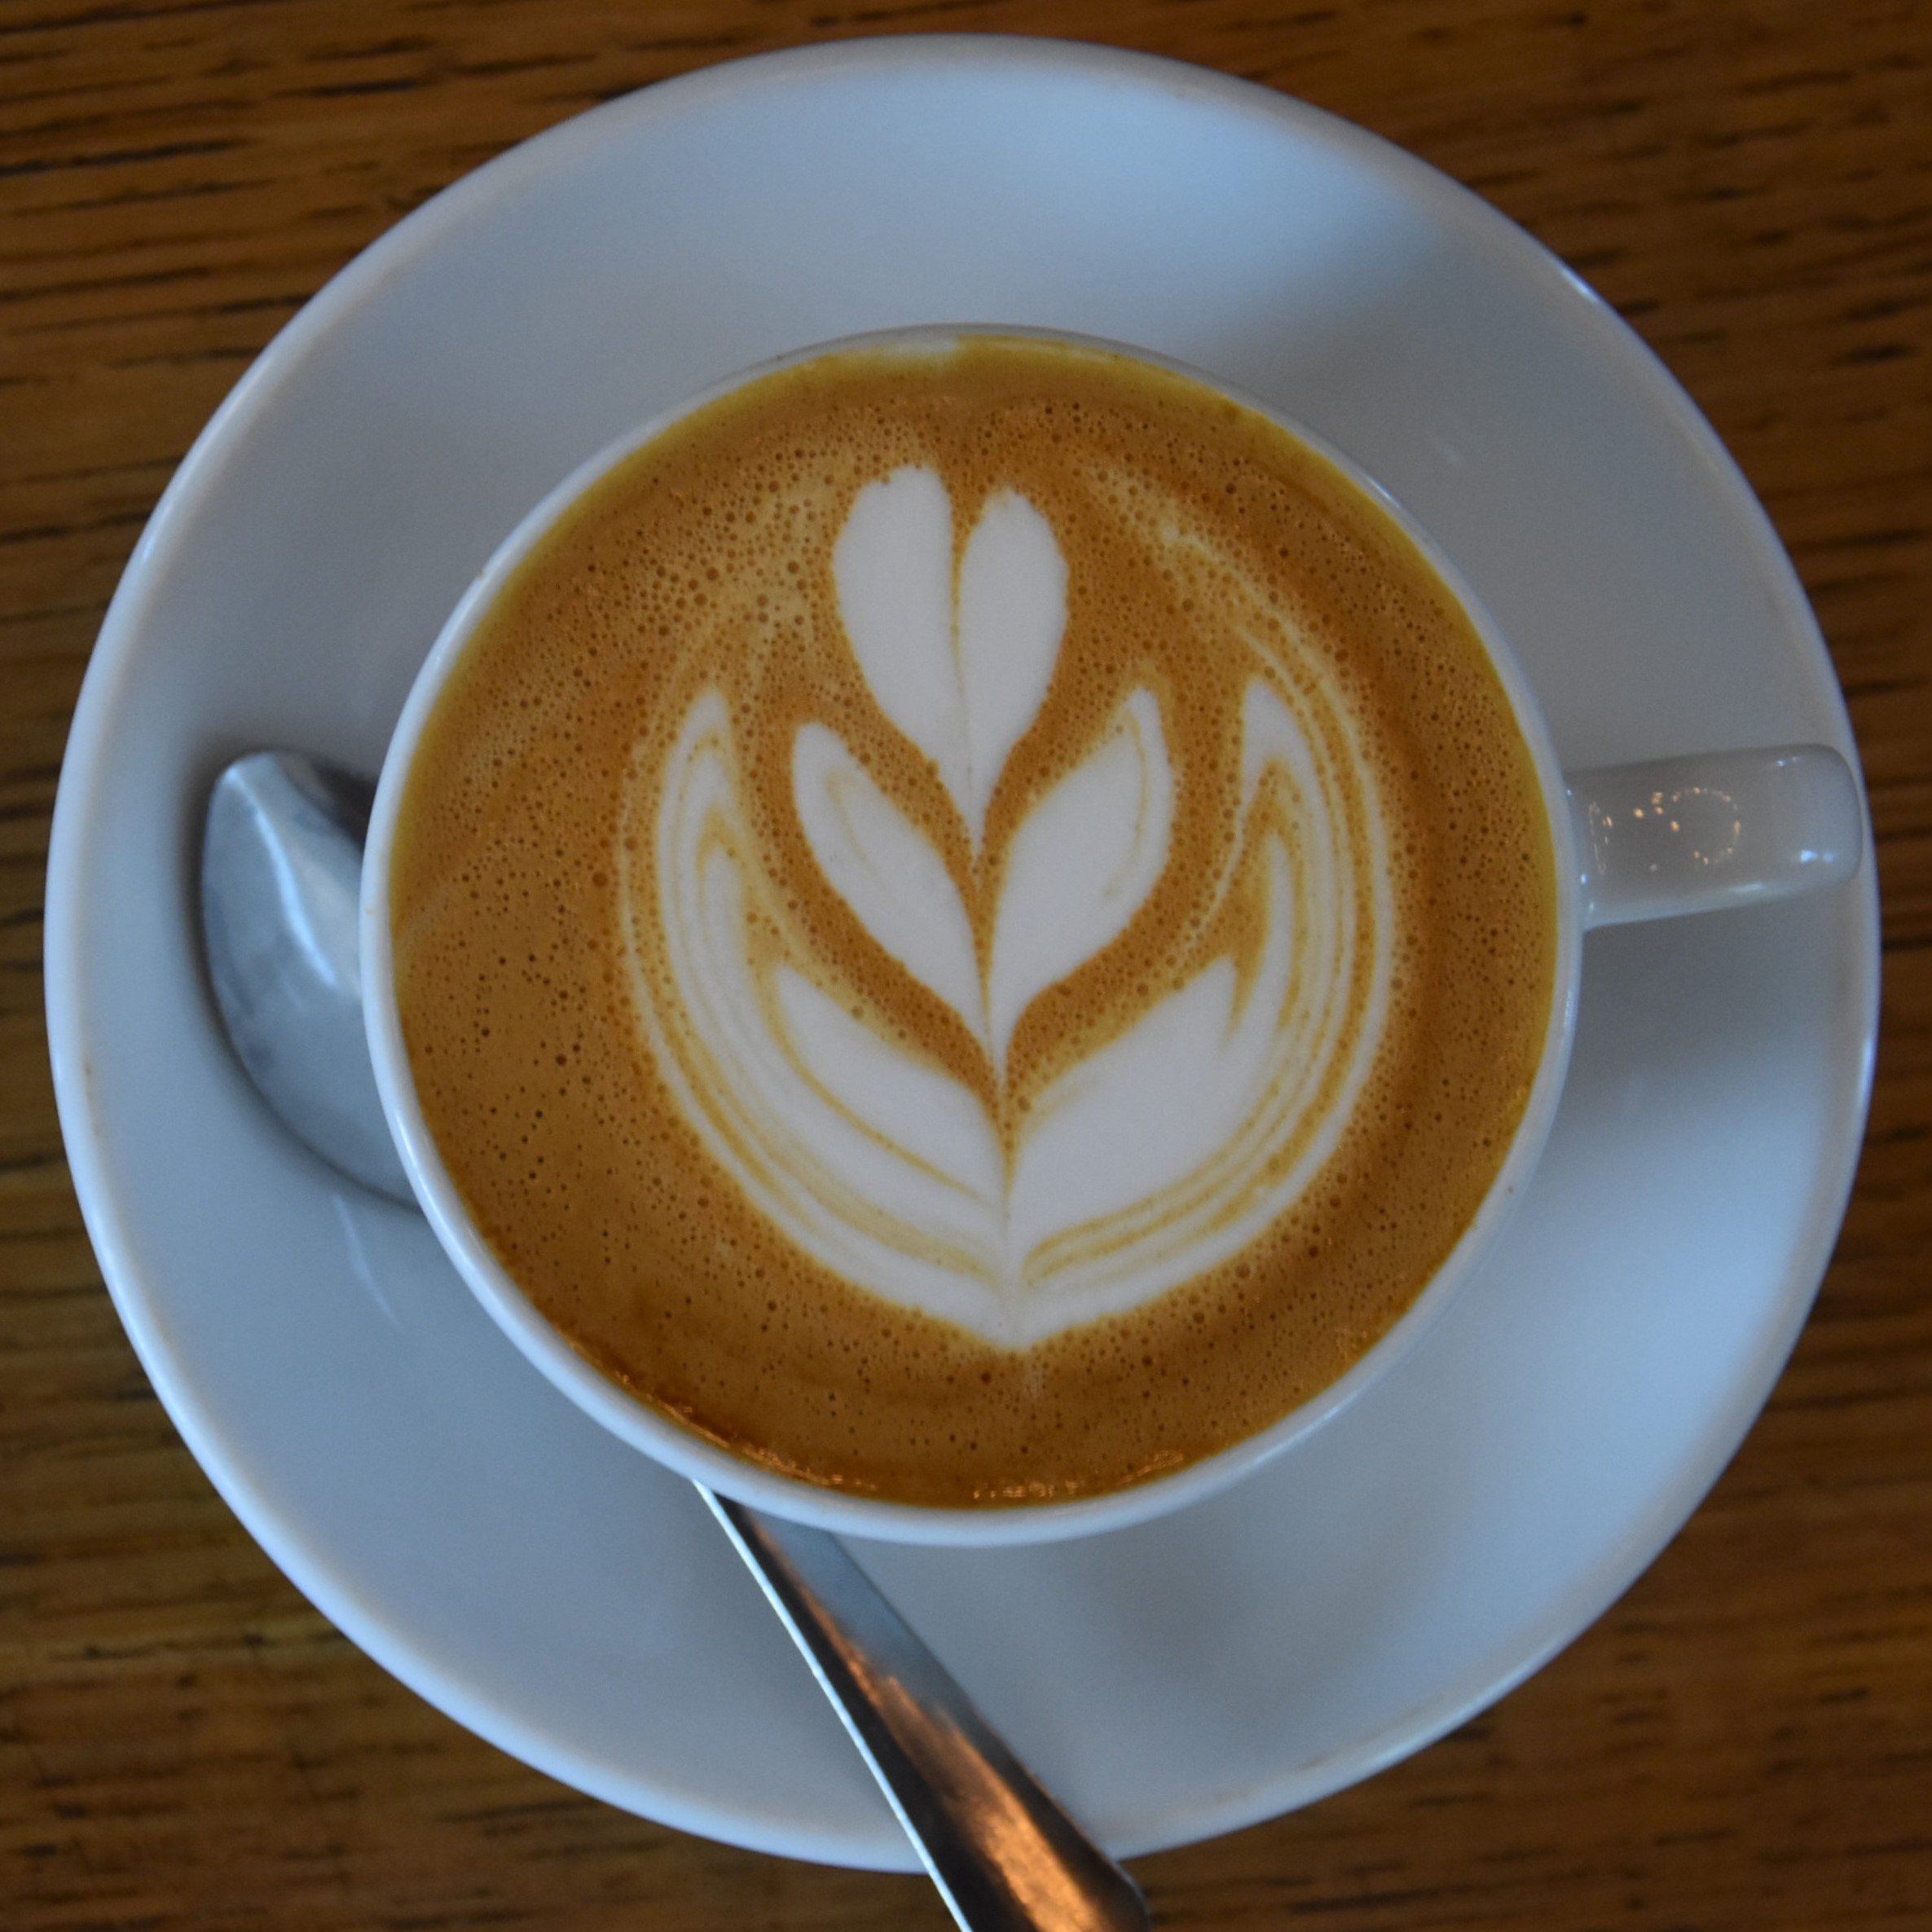 A lovely cappuccino, made with the Time and Temperature house blend which Amanda had at the Tandem Cafe and Roastery on my return in 2019.